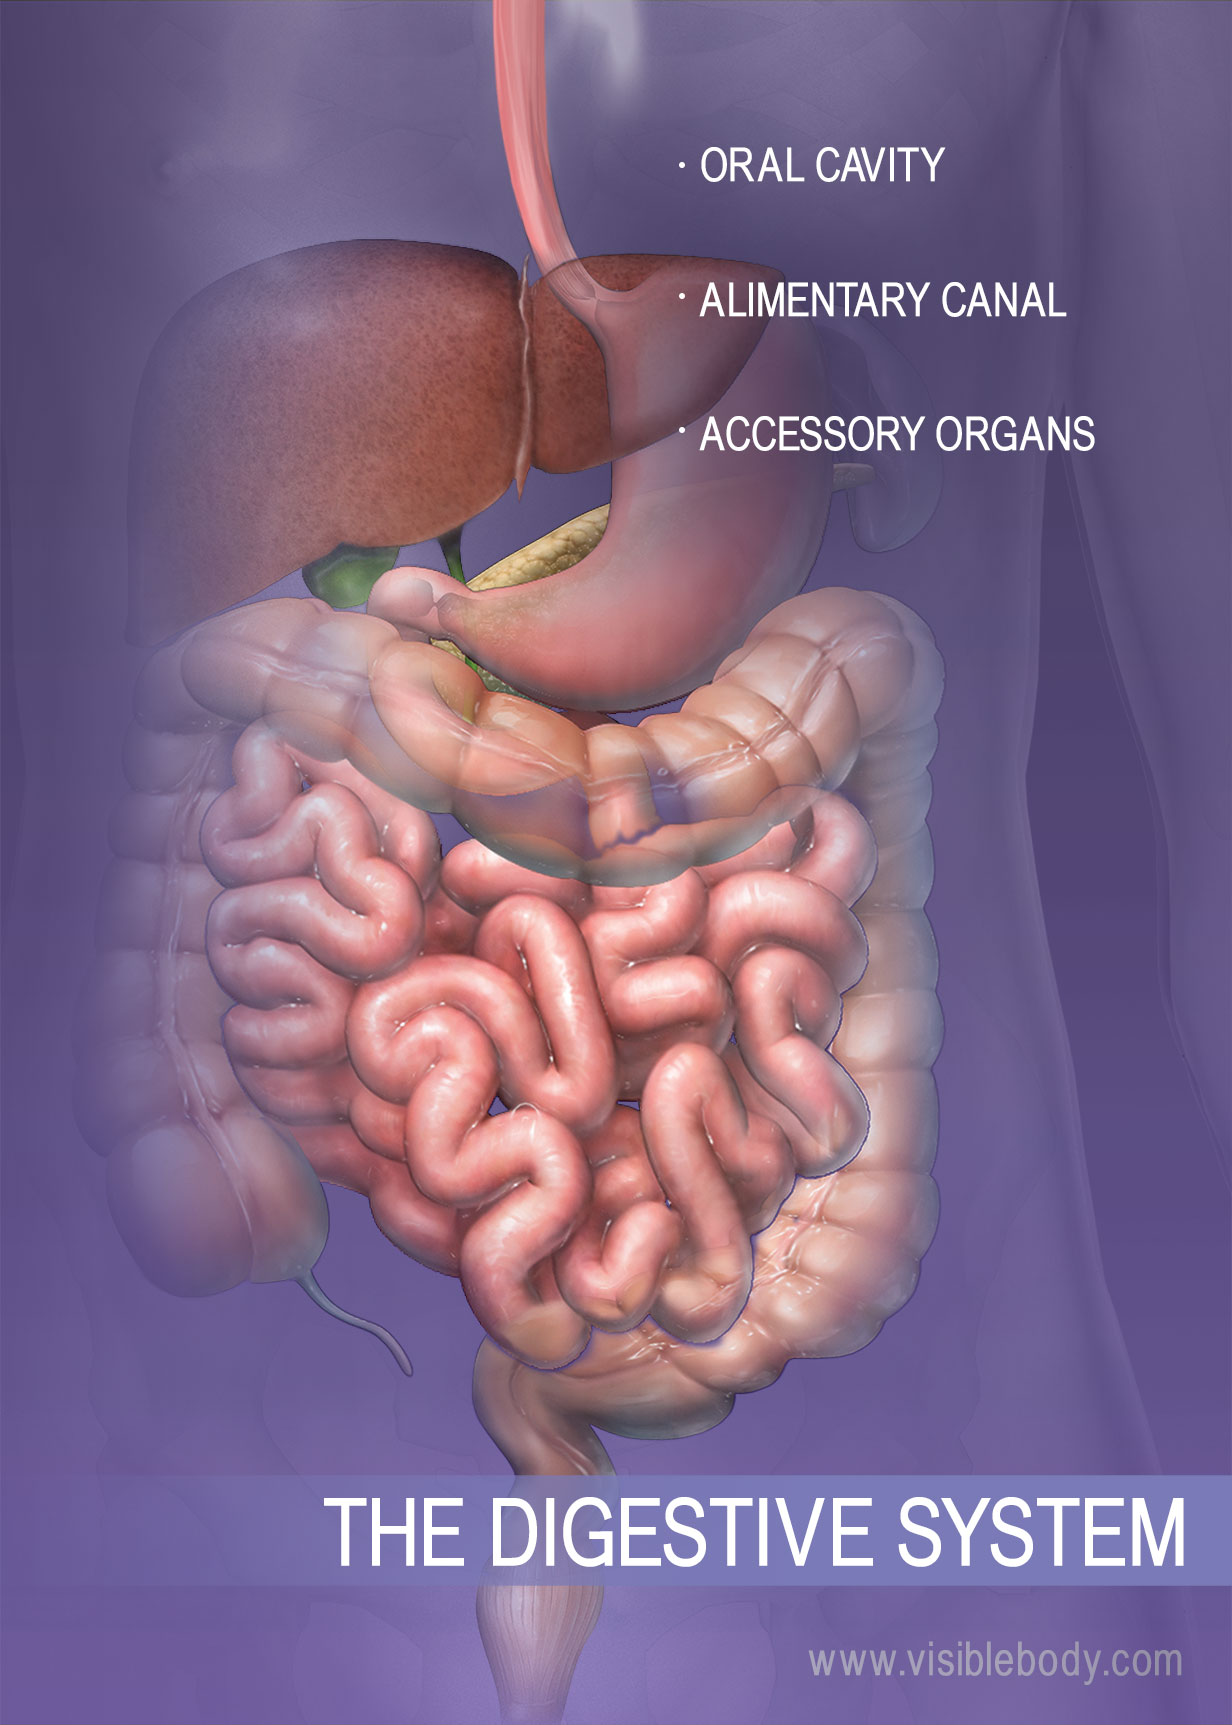 The structures of the digestive system